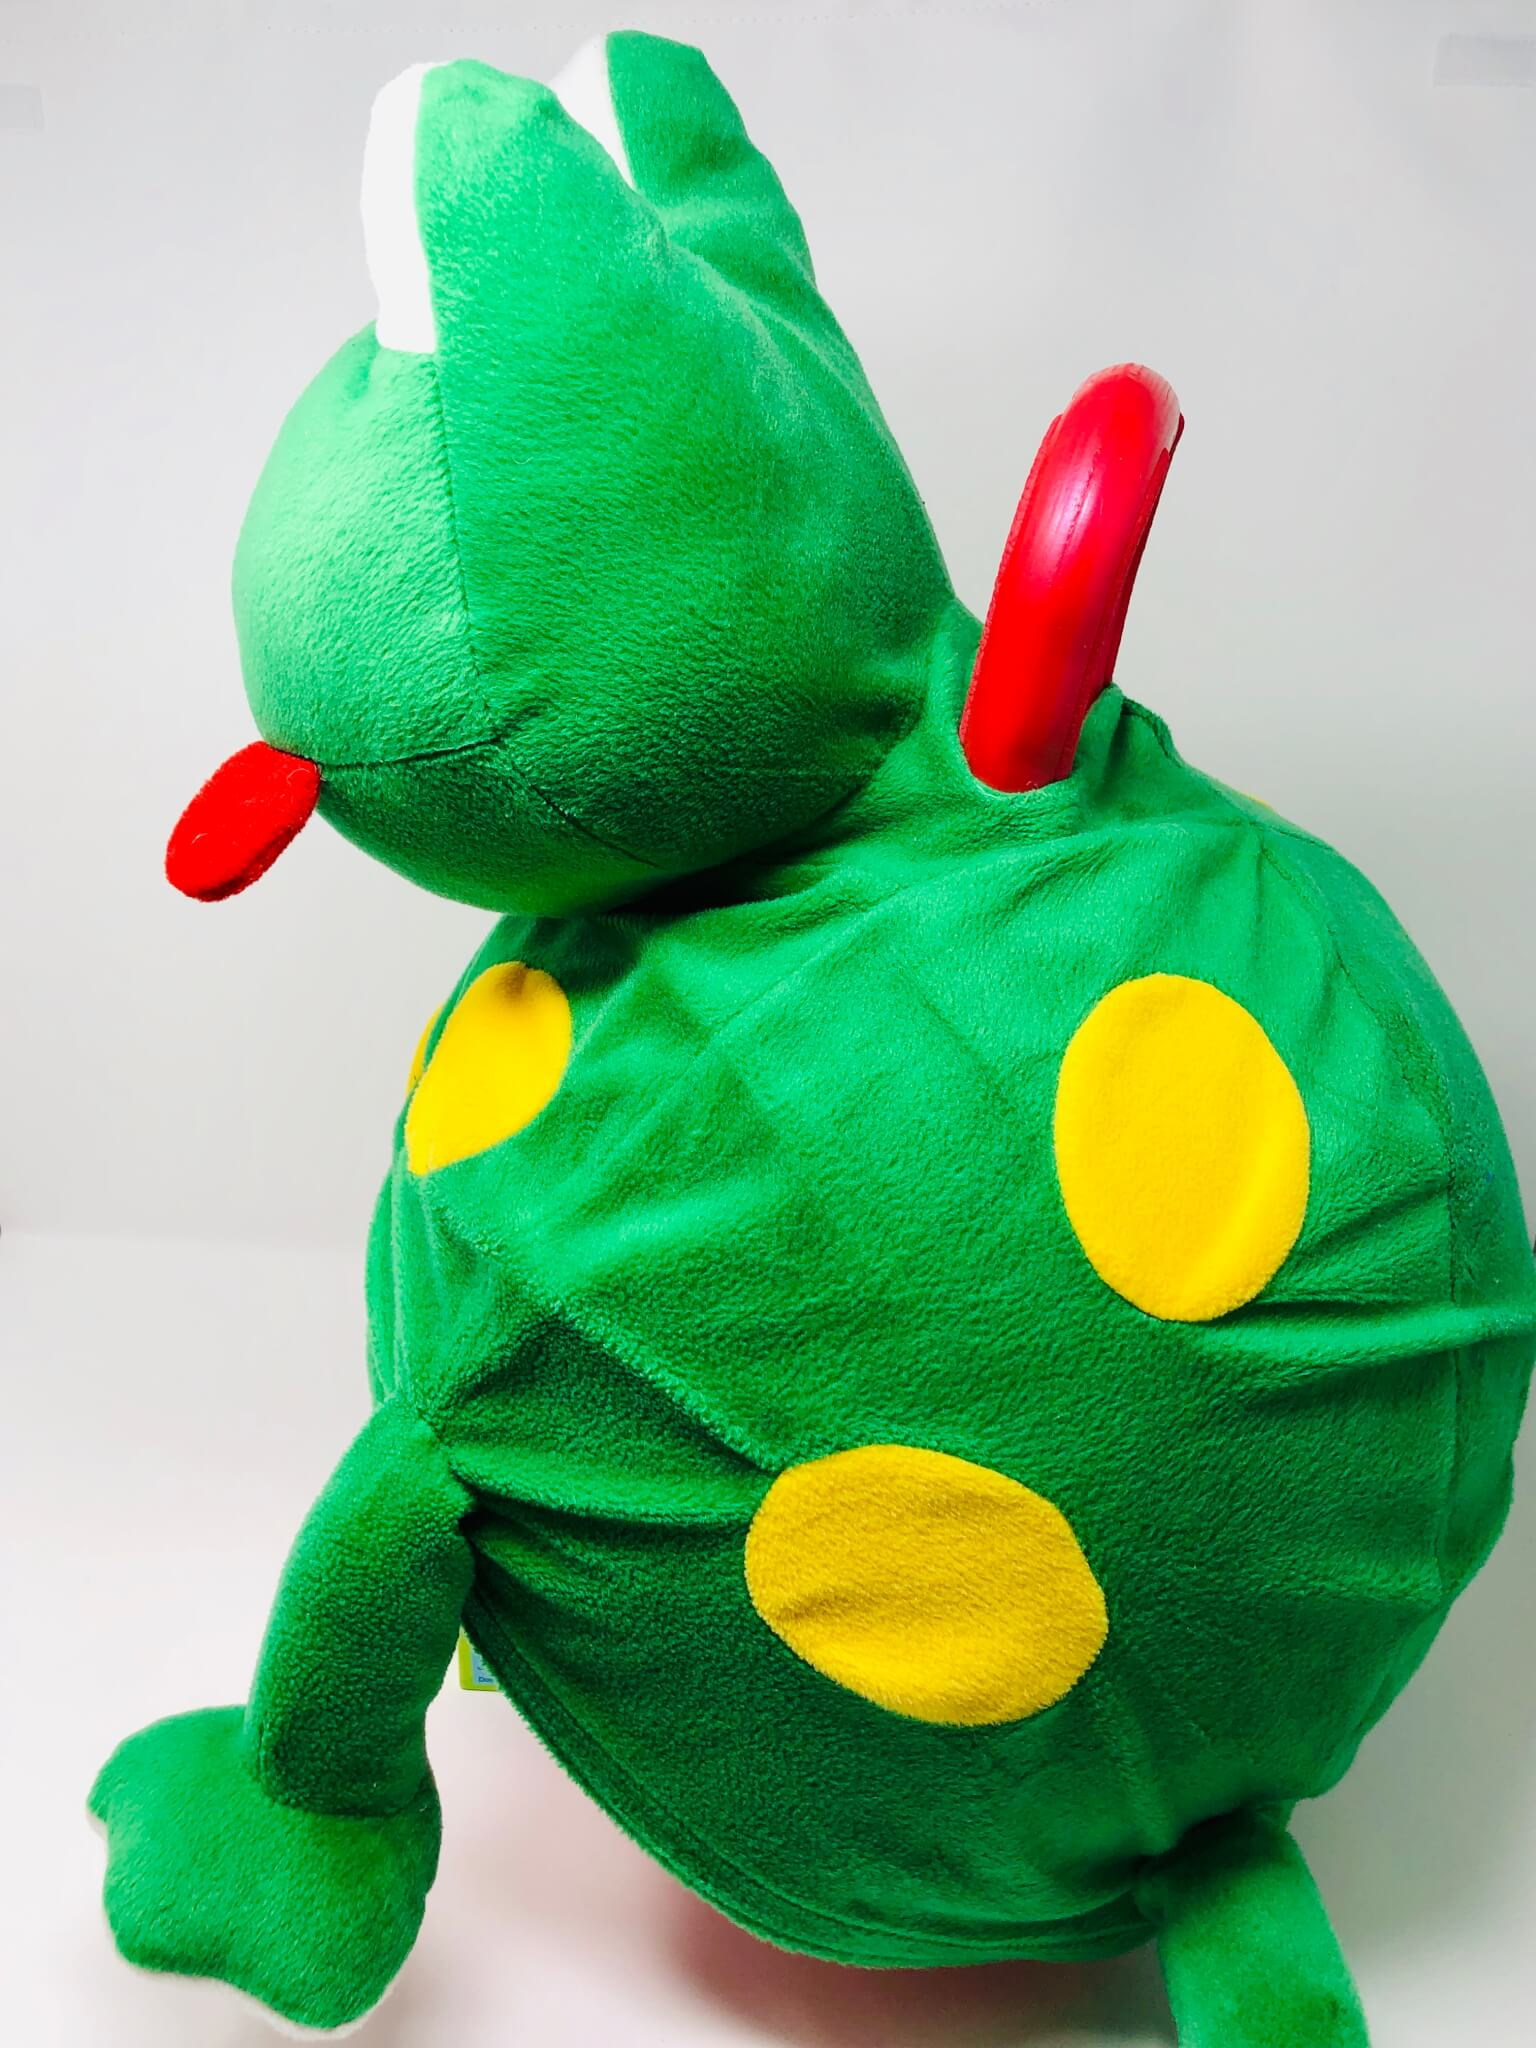 Ballon sauteur grenouille (Charm Co.)